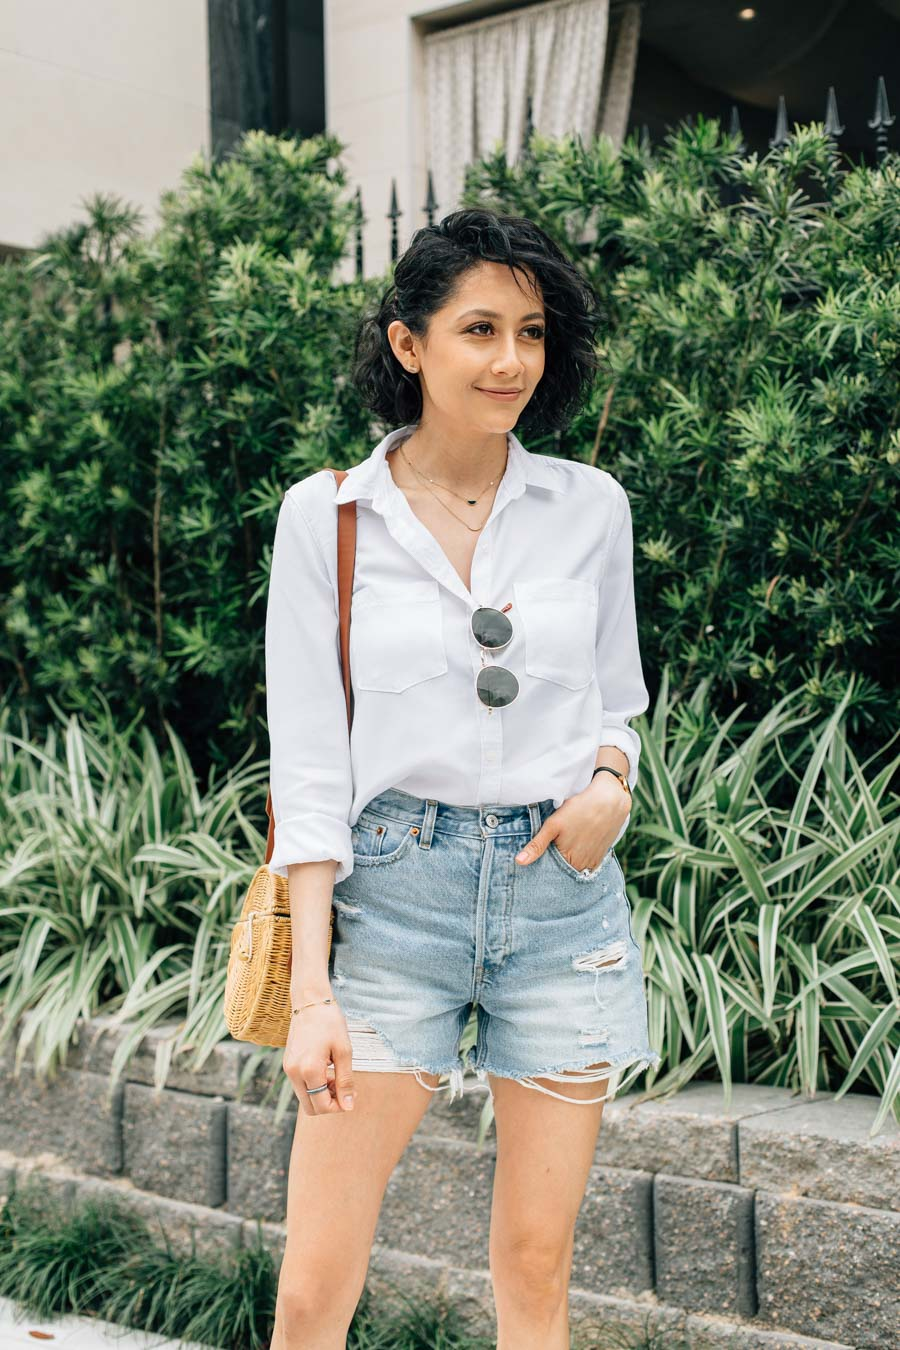 Fashion blogger Lilly Beltran wearing Abercrombie denim shorts & white button up shirt for a classic summer outfit.